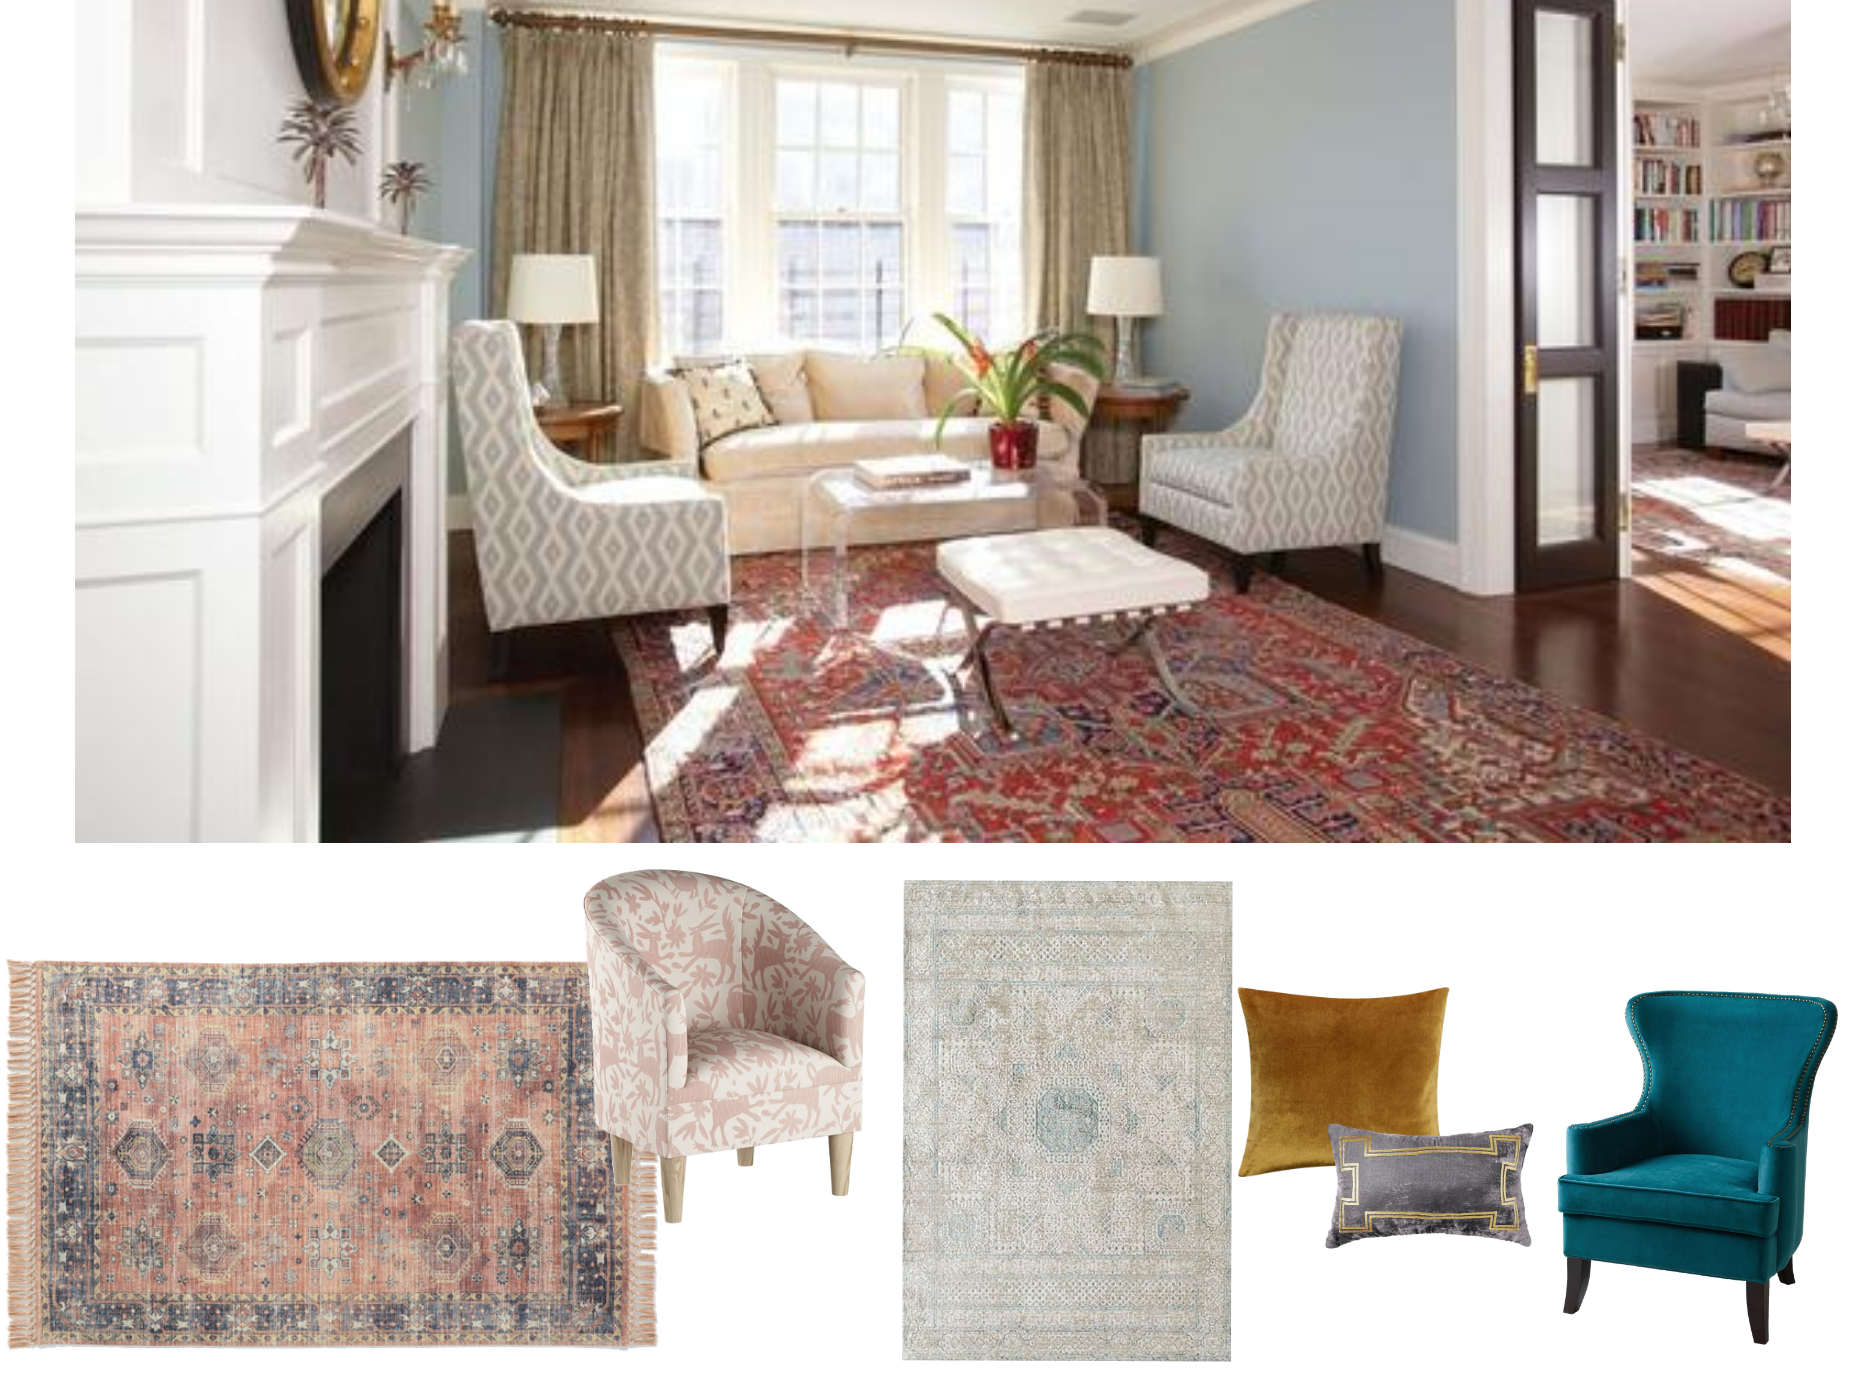 Would A Persian Rug Go With A Paisley Chair Paisley Chair Rugs Furniture For You #persian #rug #modern #living #room